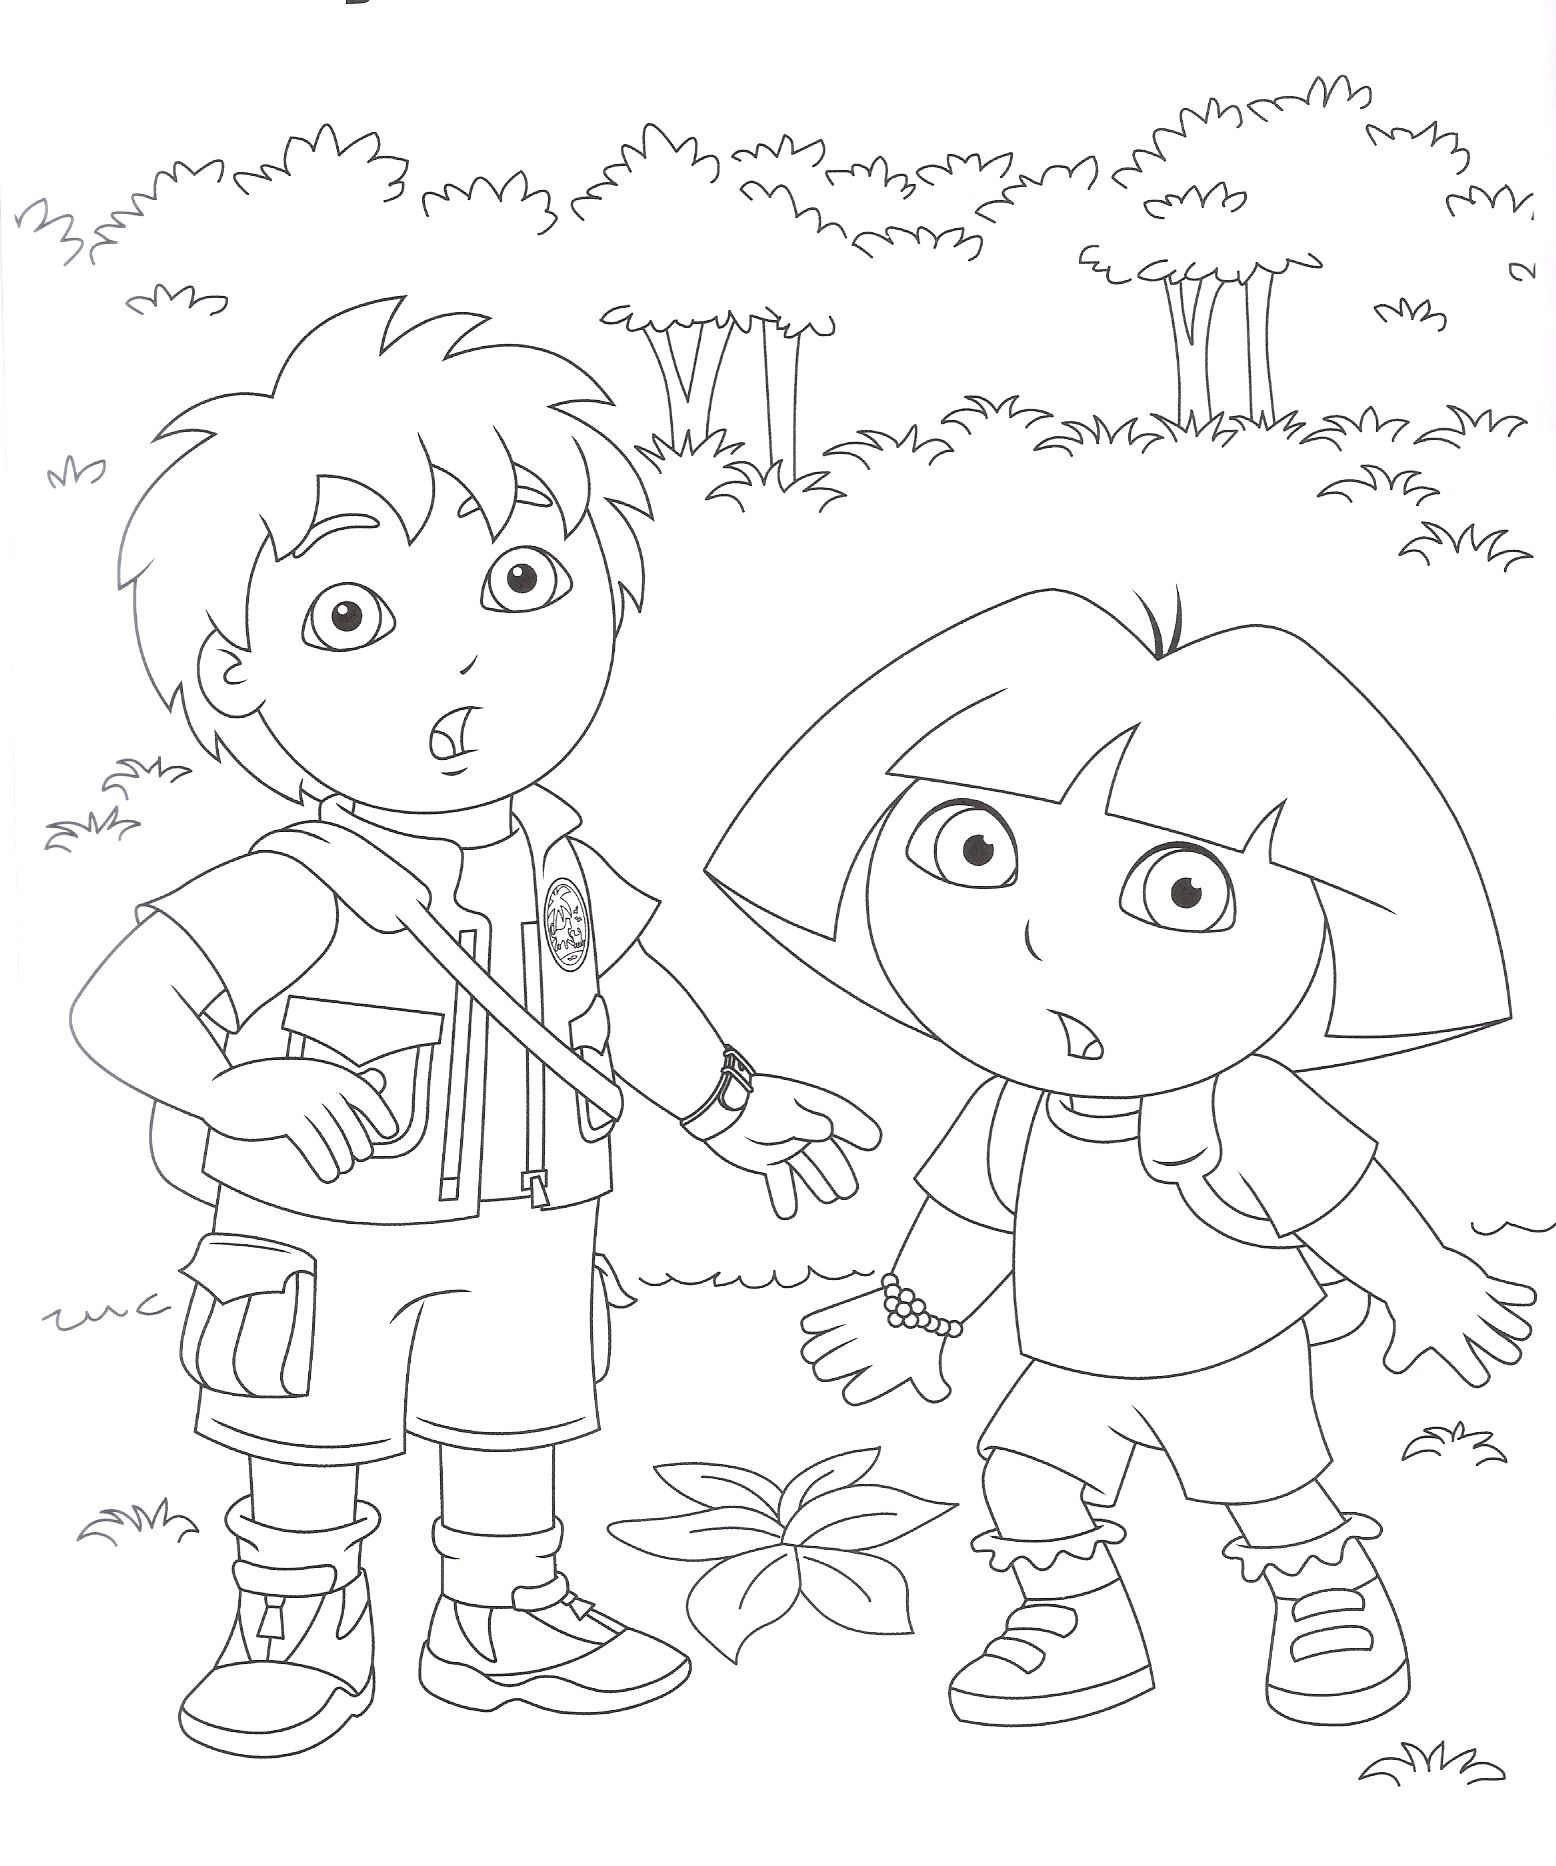 Diego and Dora seem surprised